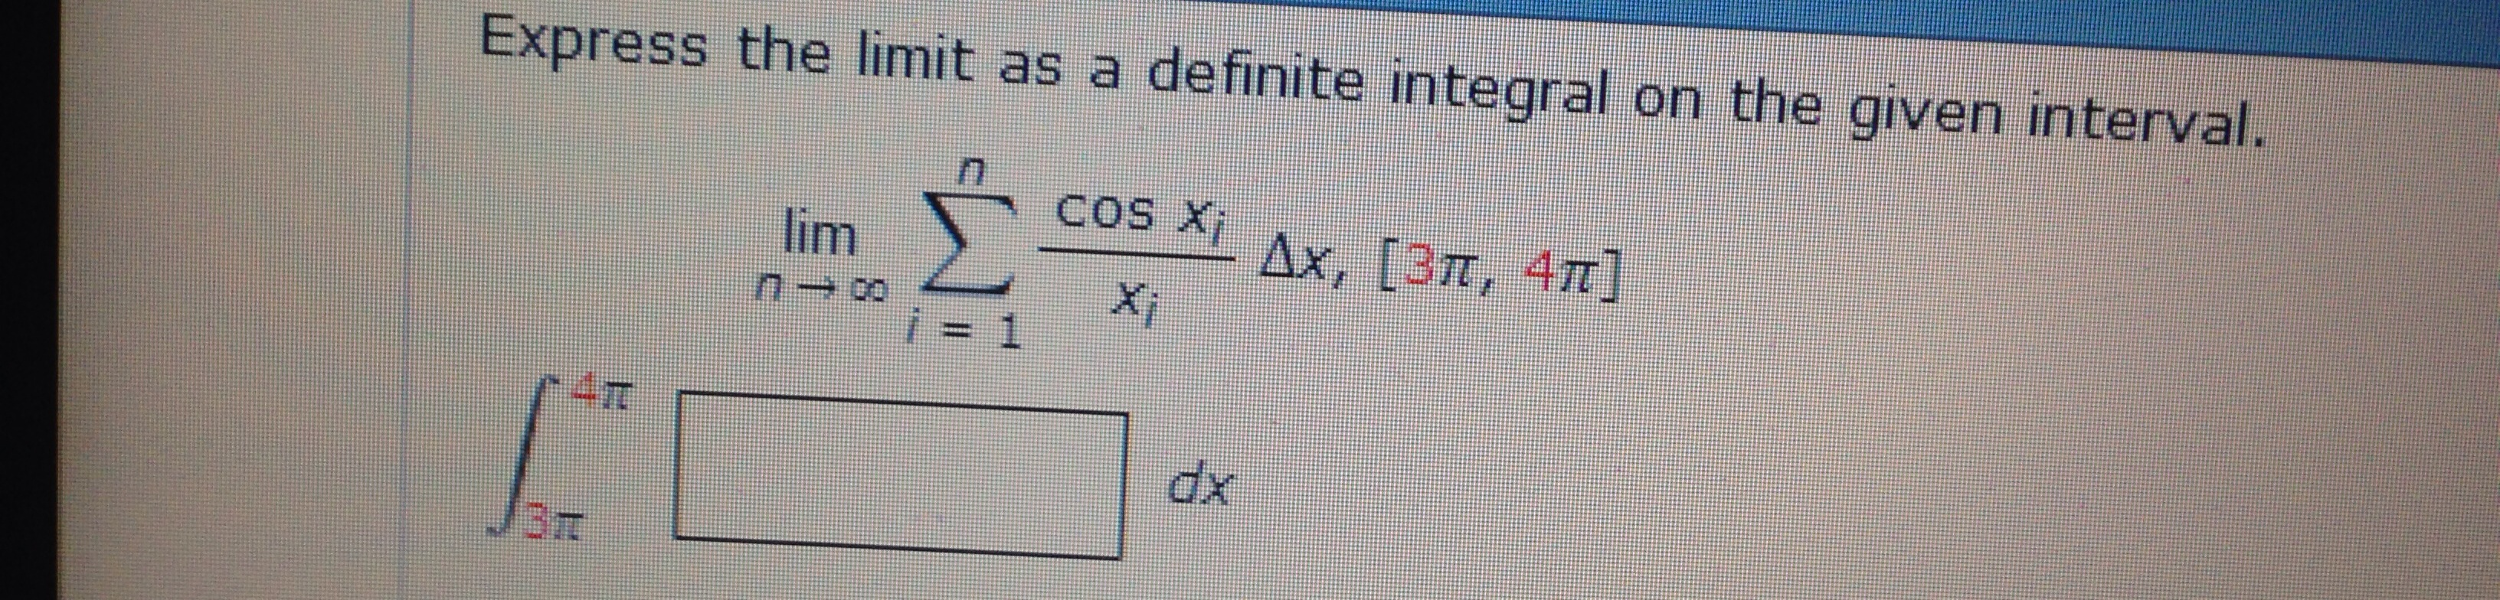 Express the limit as a definite integral on the gi